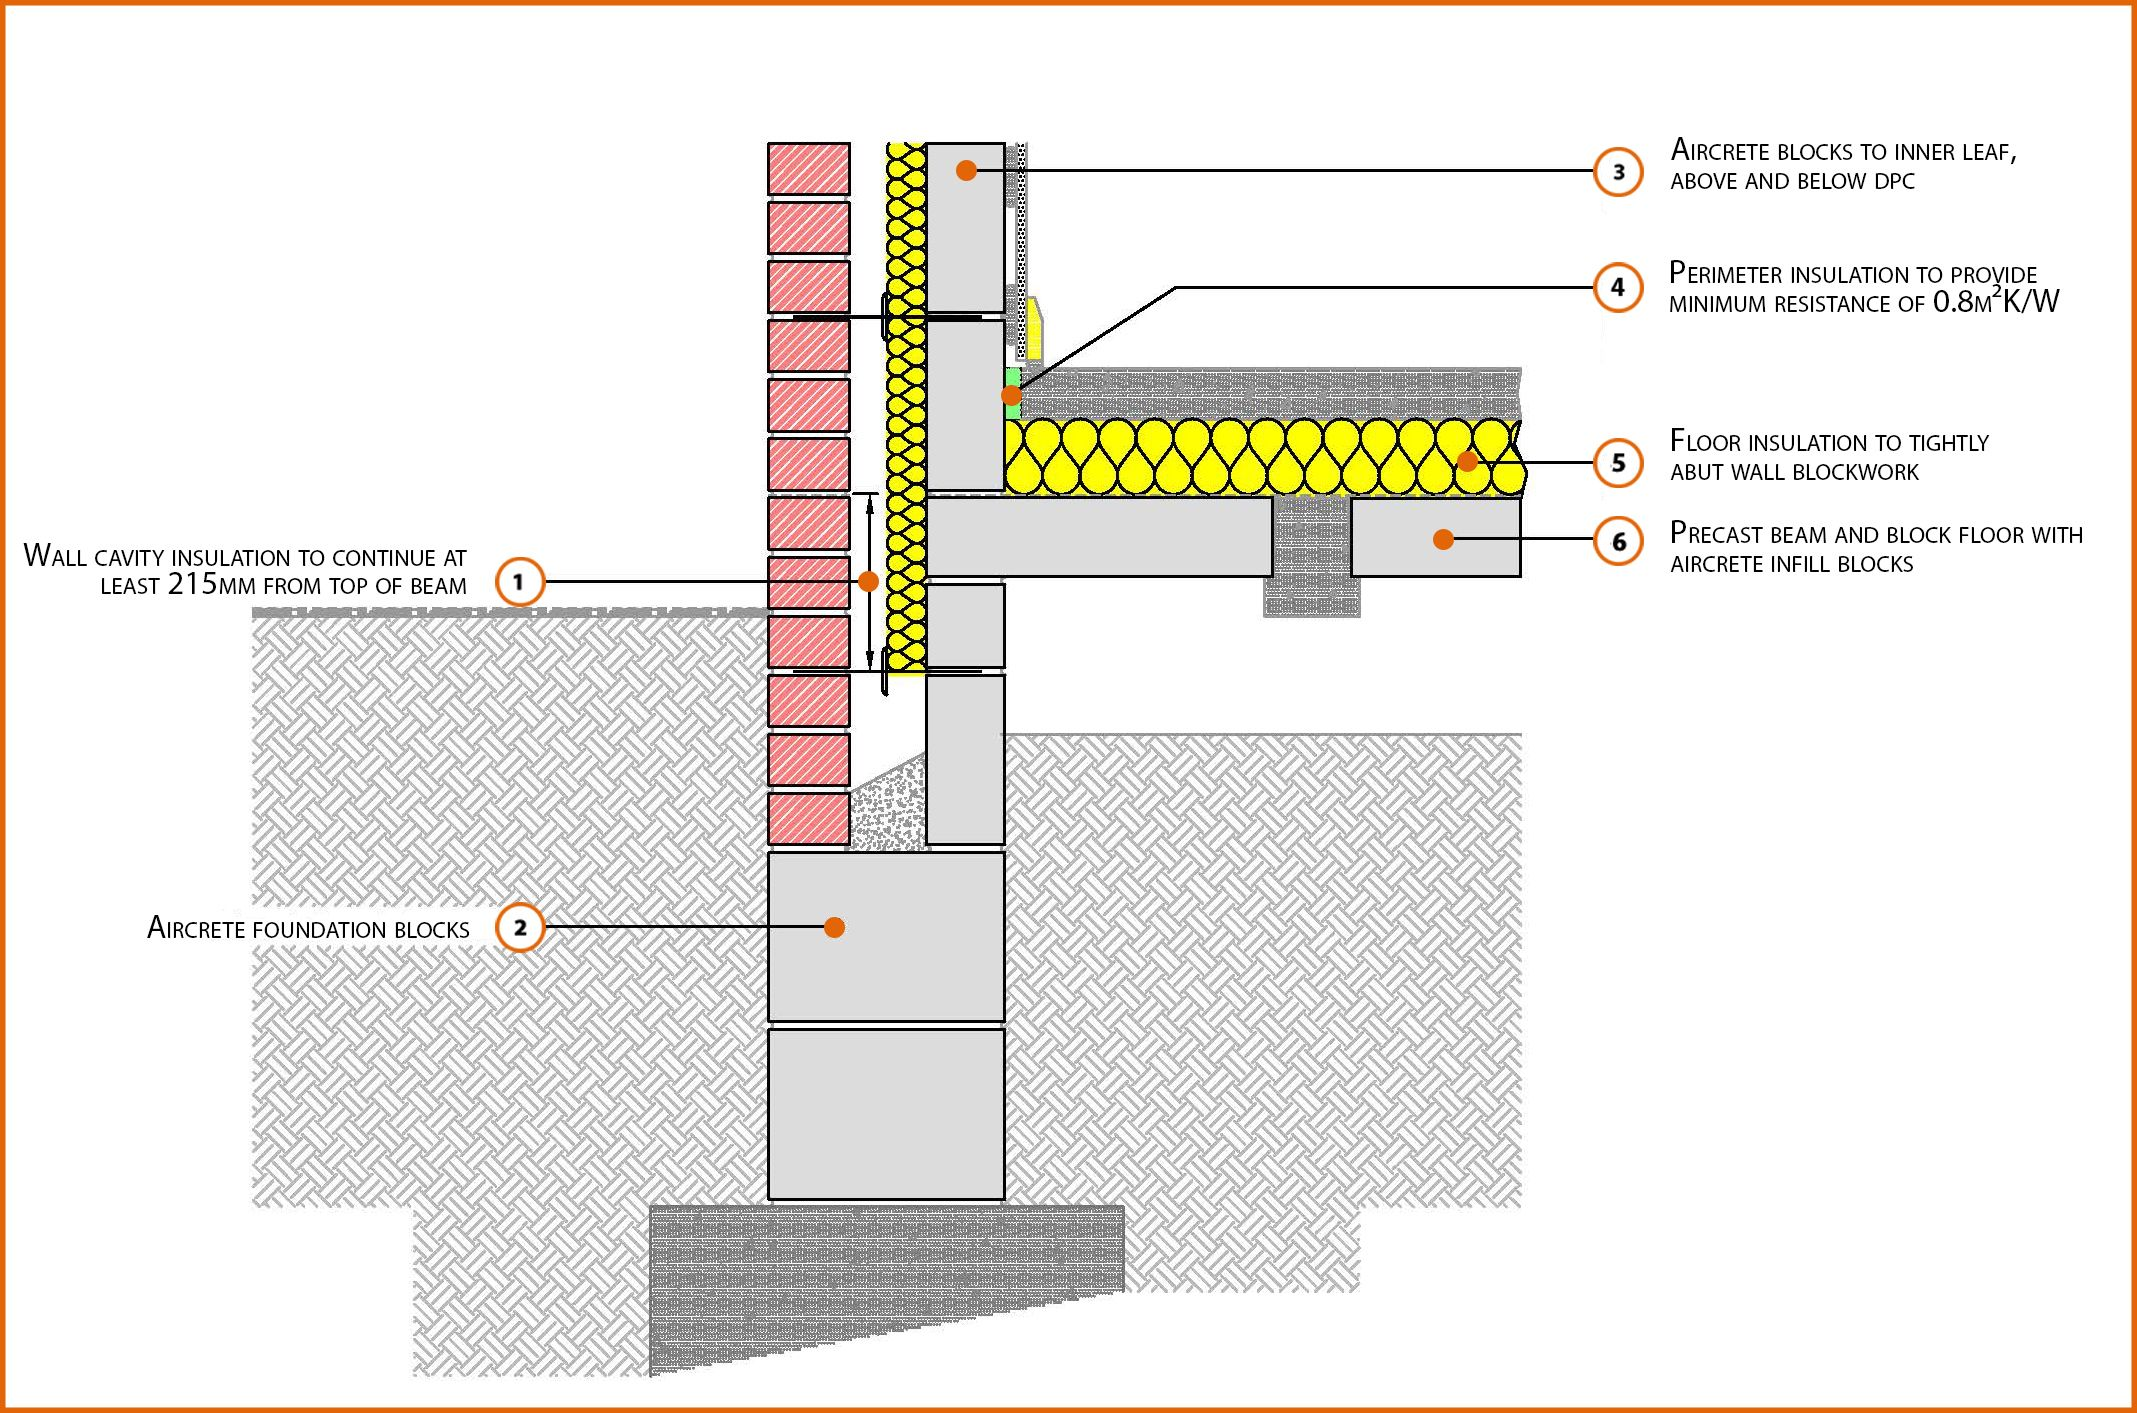 E5mcpf19 suspended beam and block floor insulation above Insulated block construction